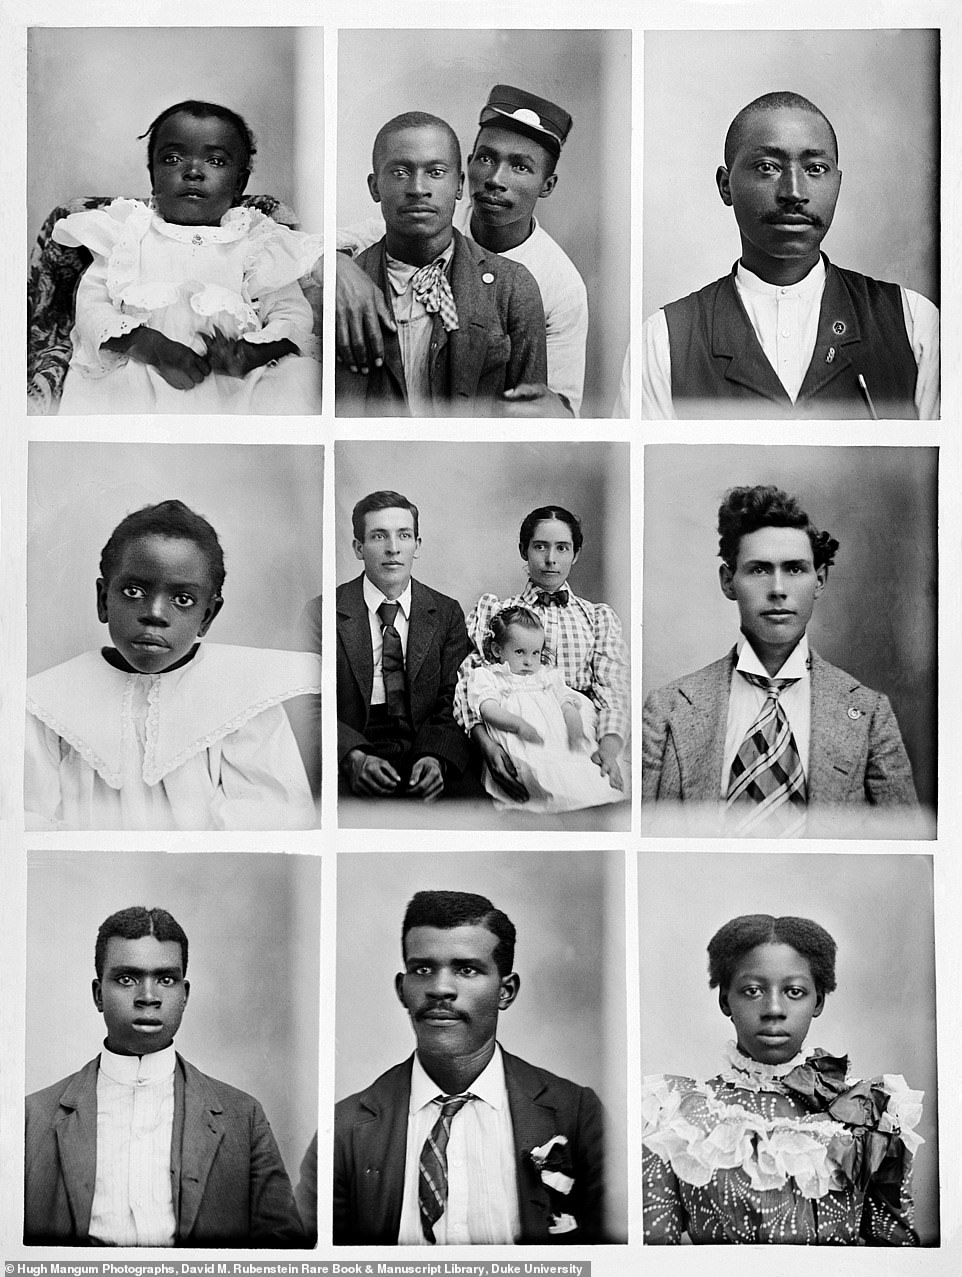 These series of portraits were likely taken in Durham, North Carolina, where Mangum began his career. The city was known to have a prosperous black community with black-owned businesses such as furniture shops, cigar and tobacco factories, textile and lumber mills as well as brickyards and barbershops